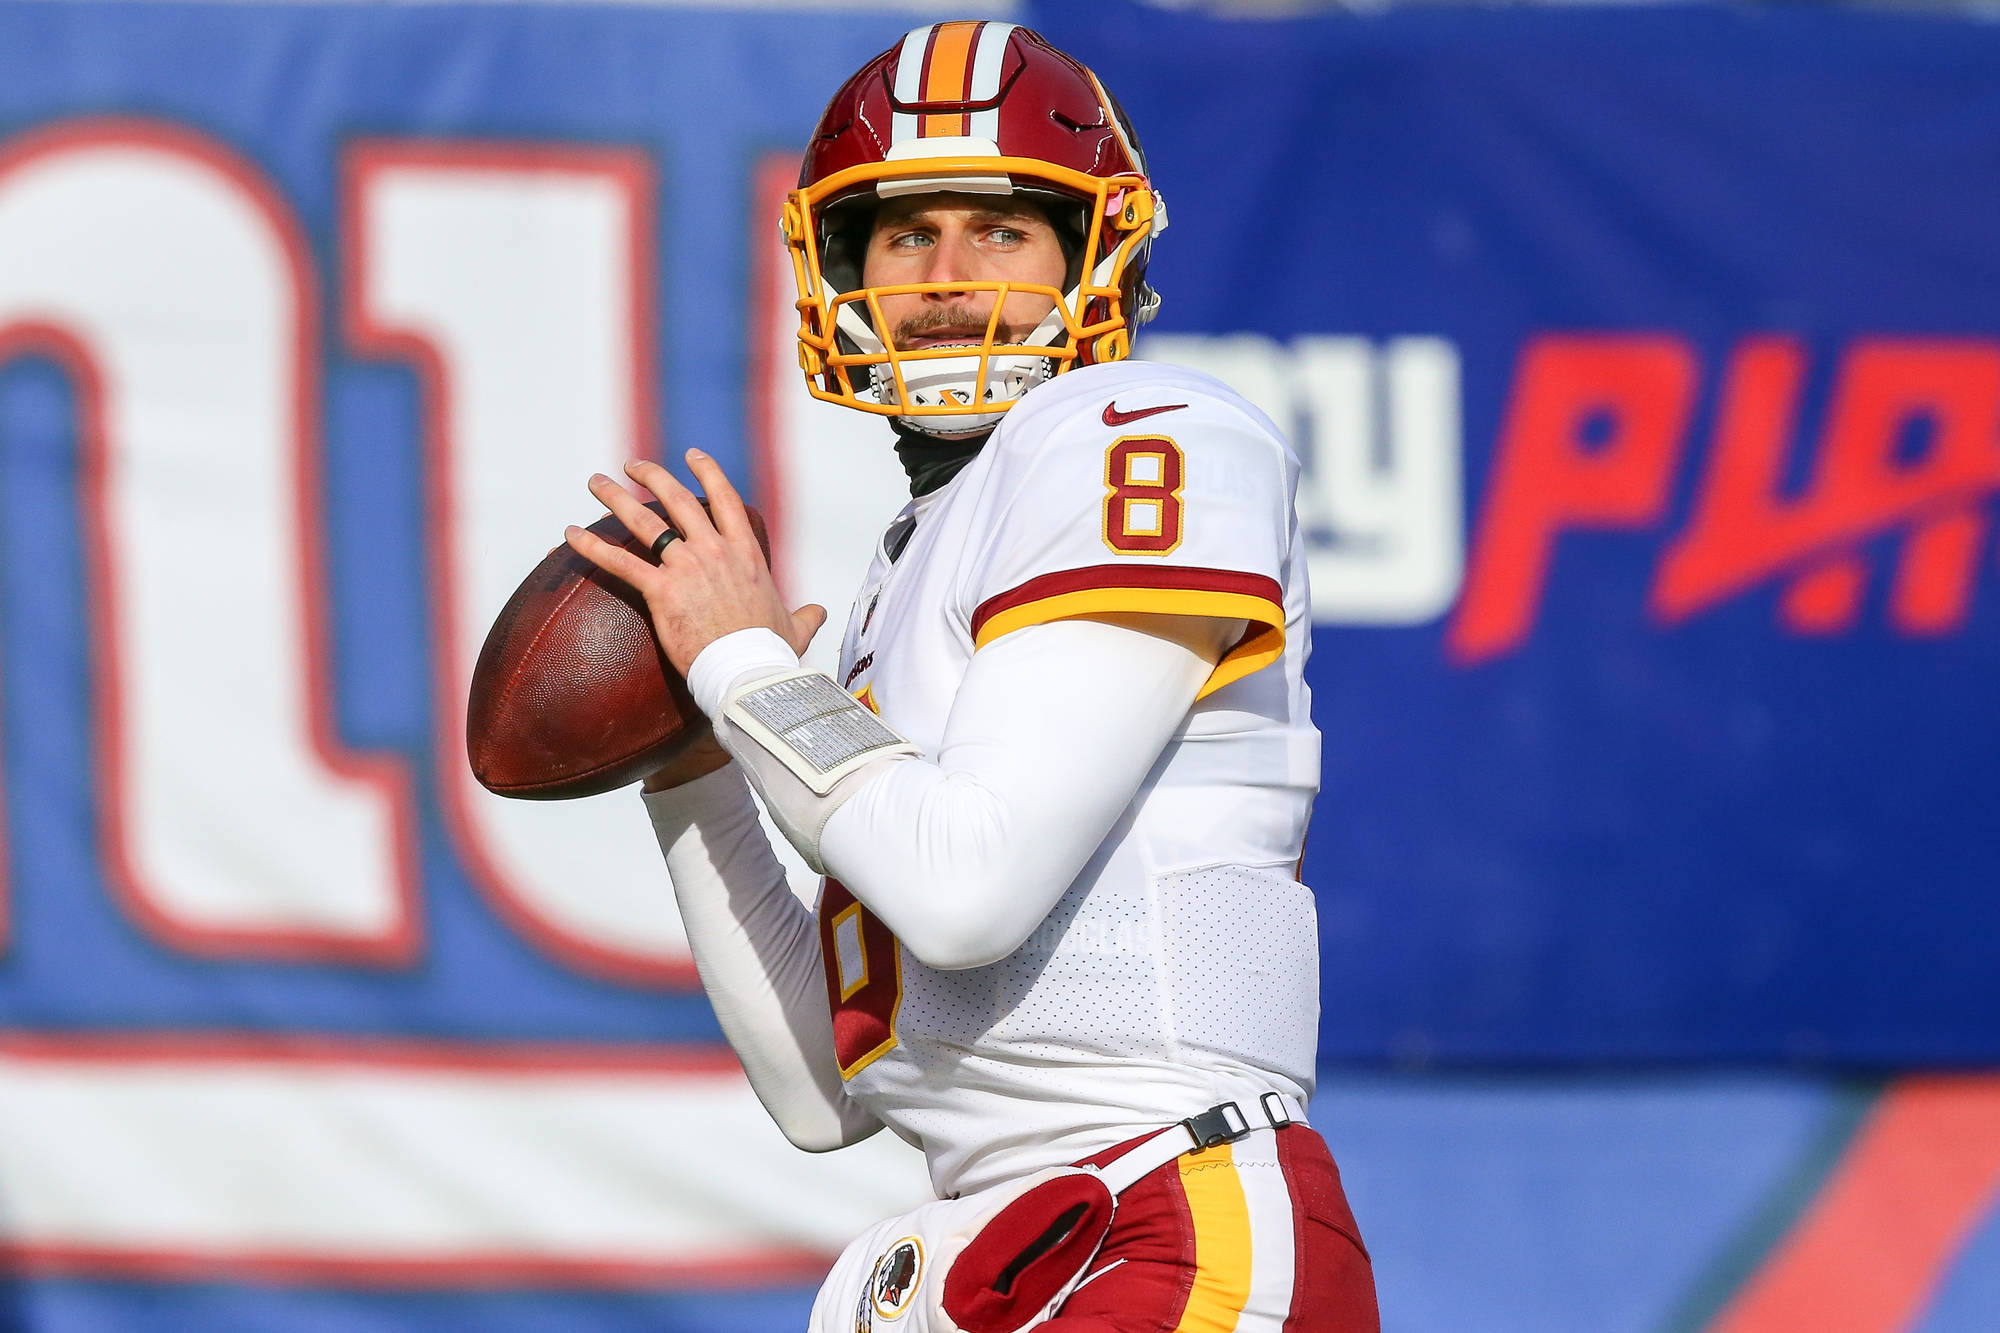 Doug Pederson not happy about Alex Smith joining NFC East